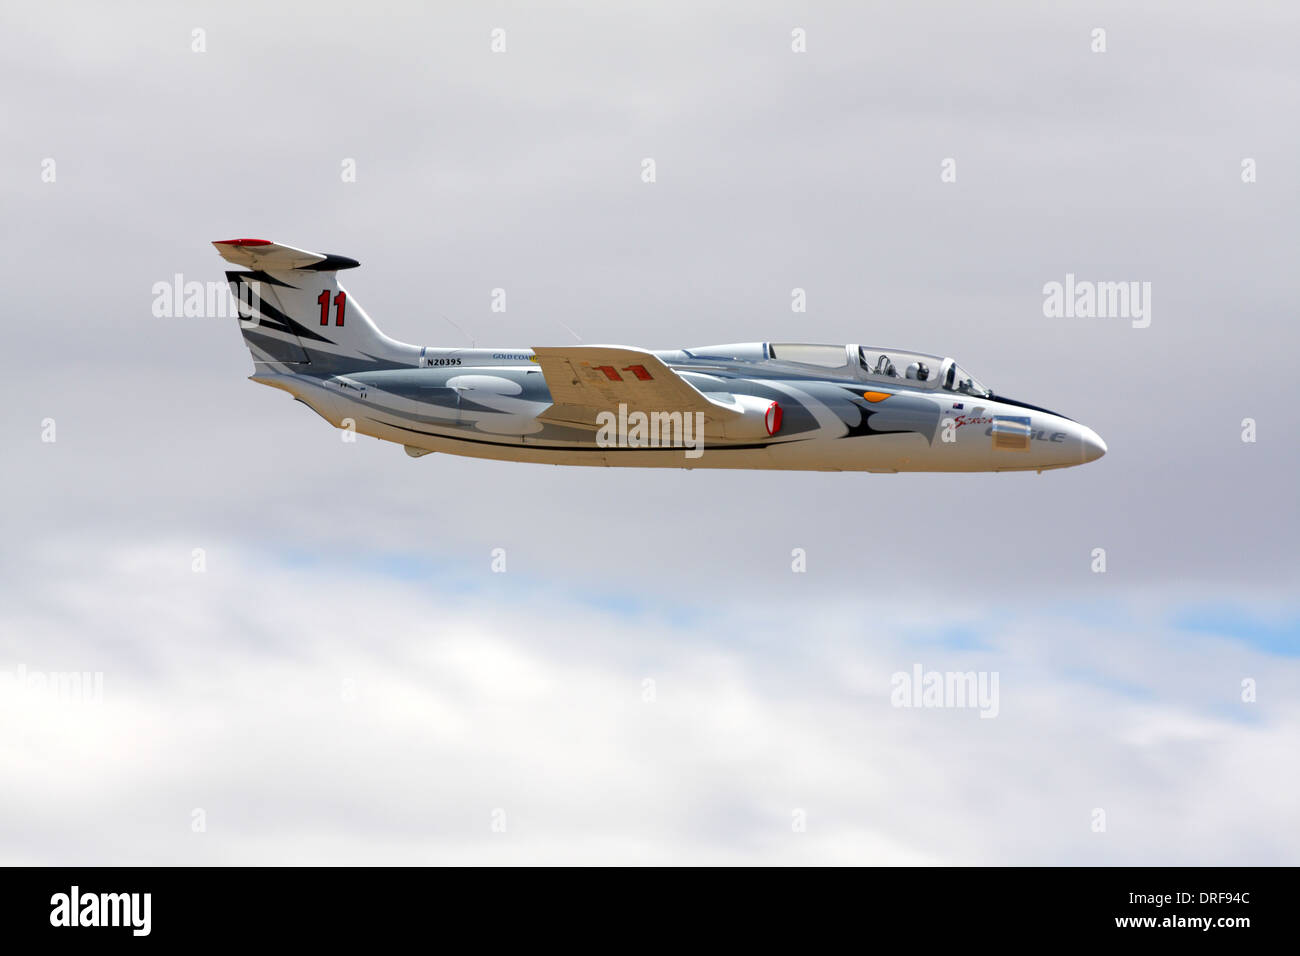 Aero Vodochody L-29 Delfin in flight during a Jet Class heat race as part of the 2010 Reno National Championship Air Races. - Stock Image